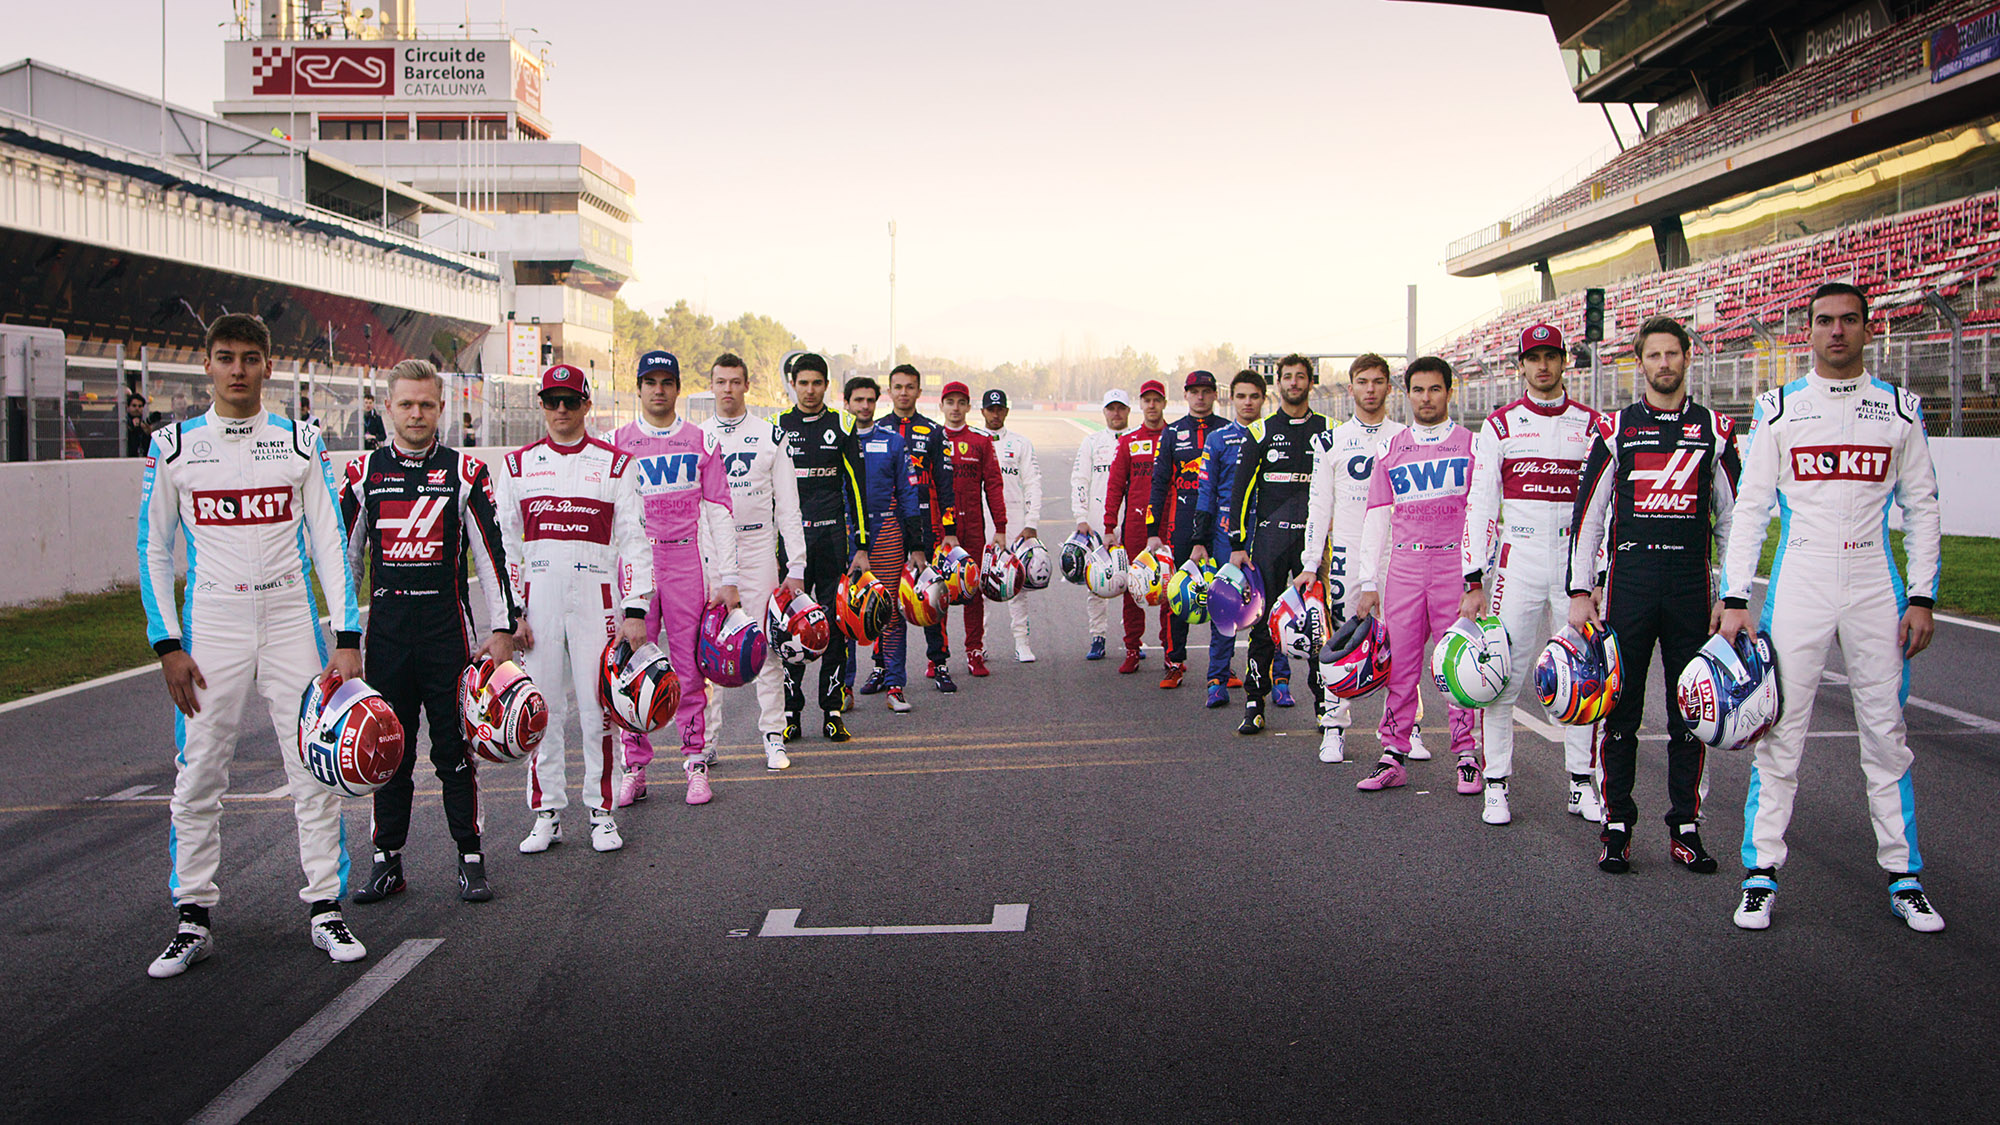 2020 F1 drivers from Drive to Survive